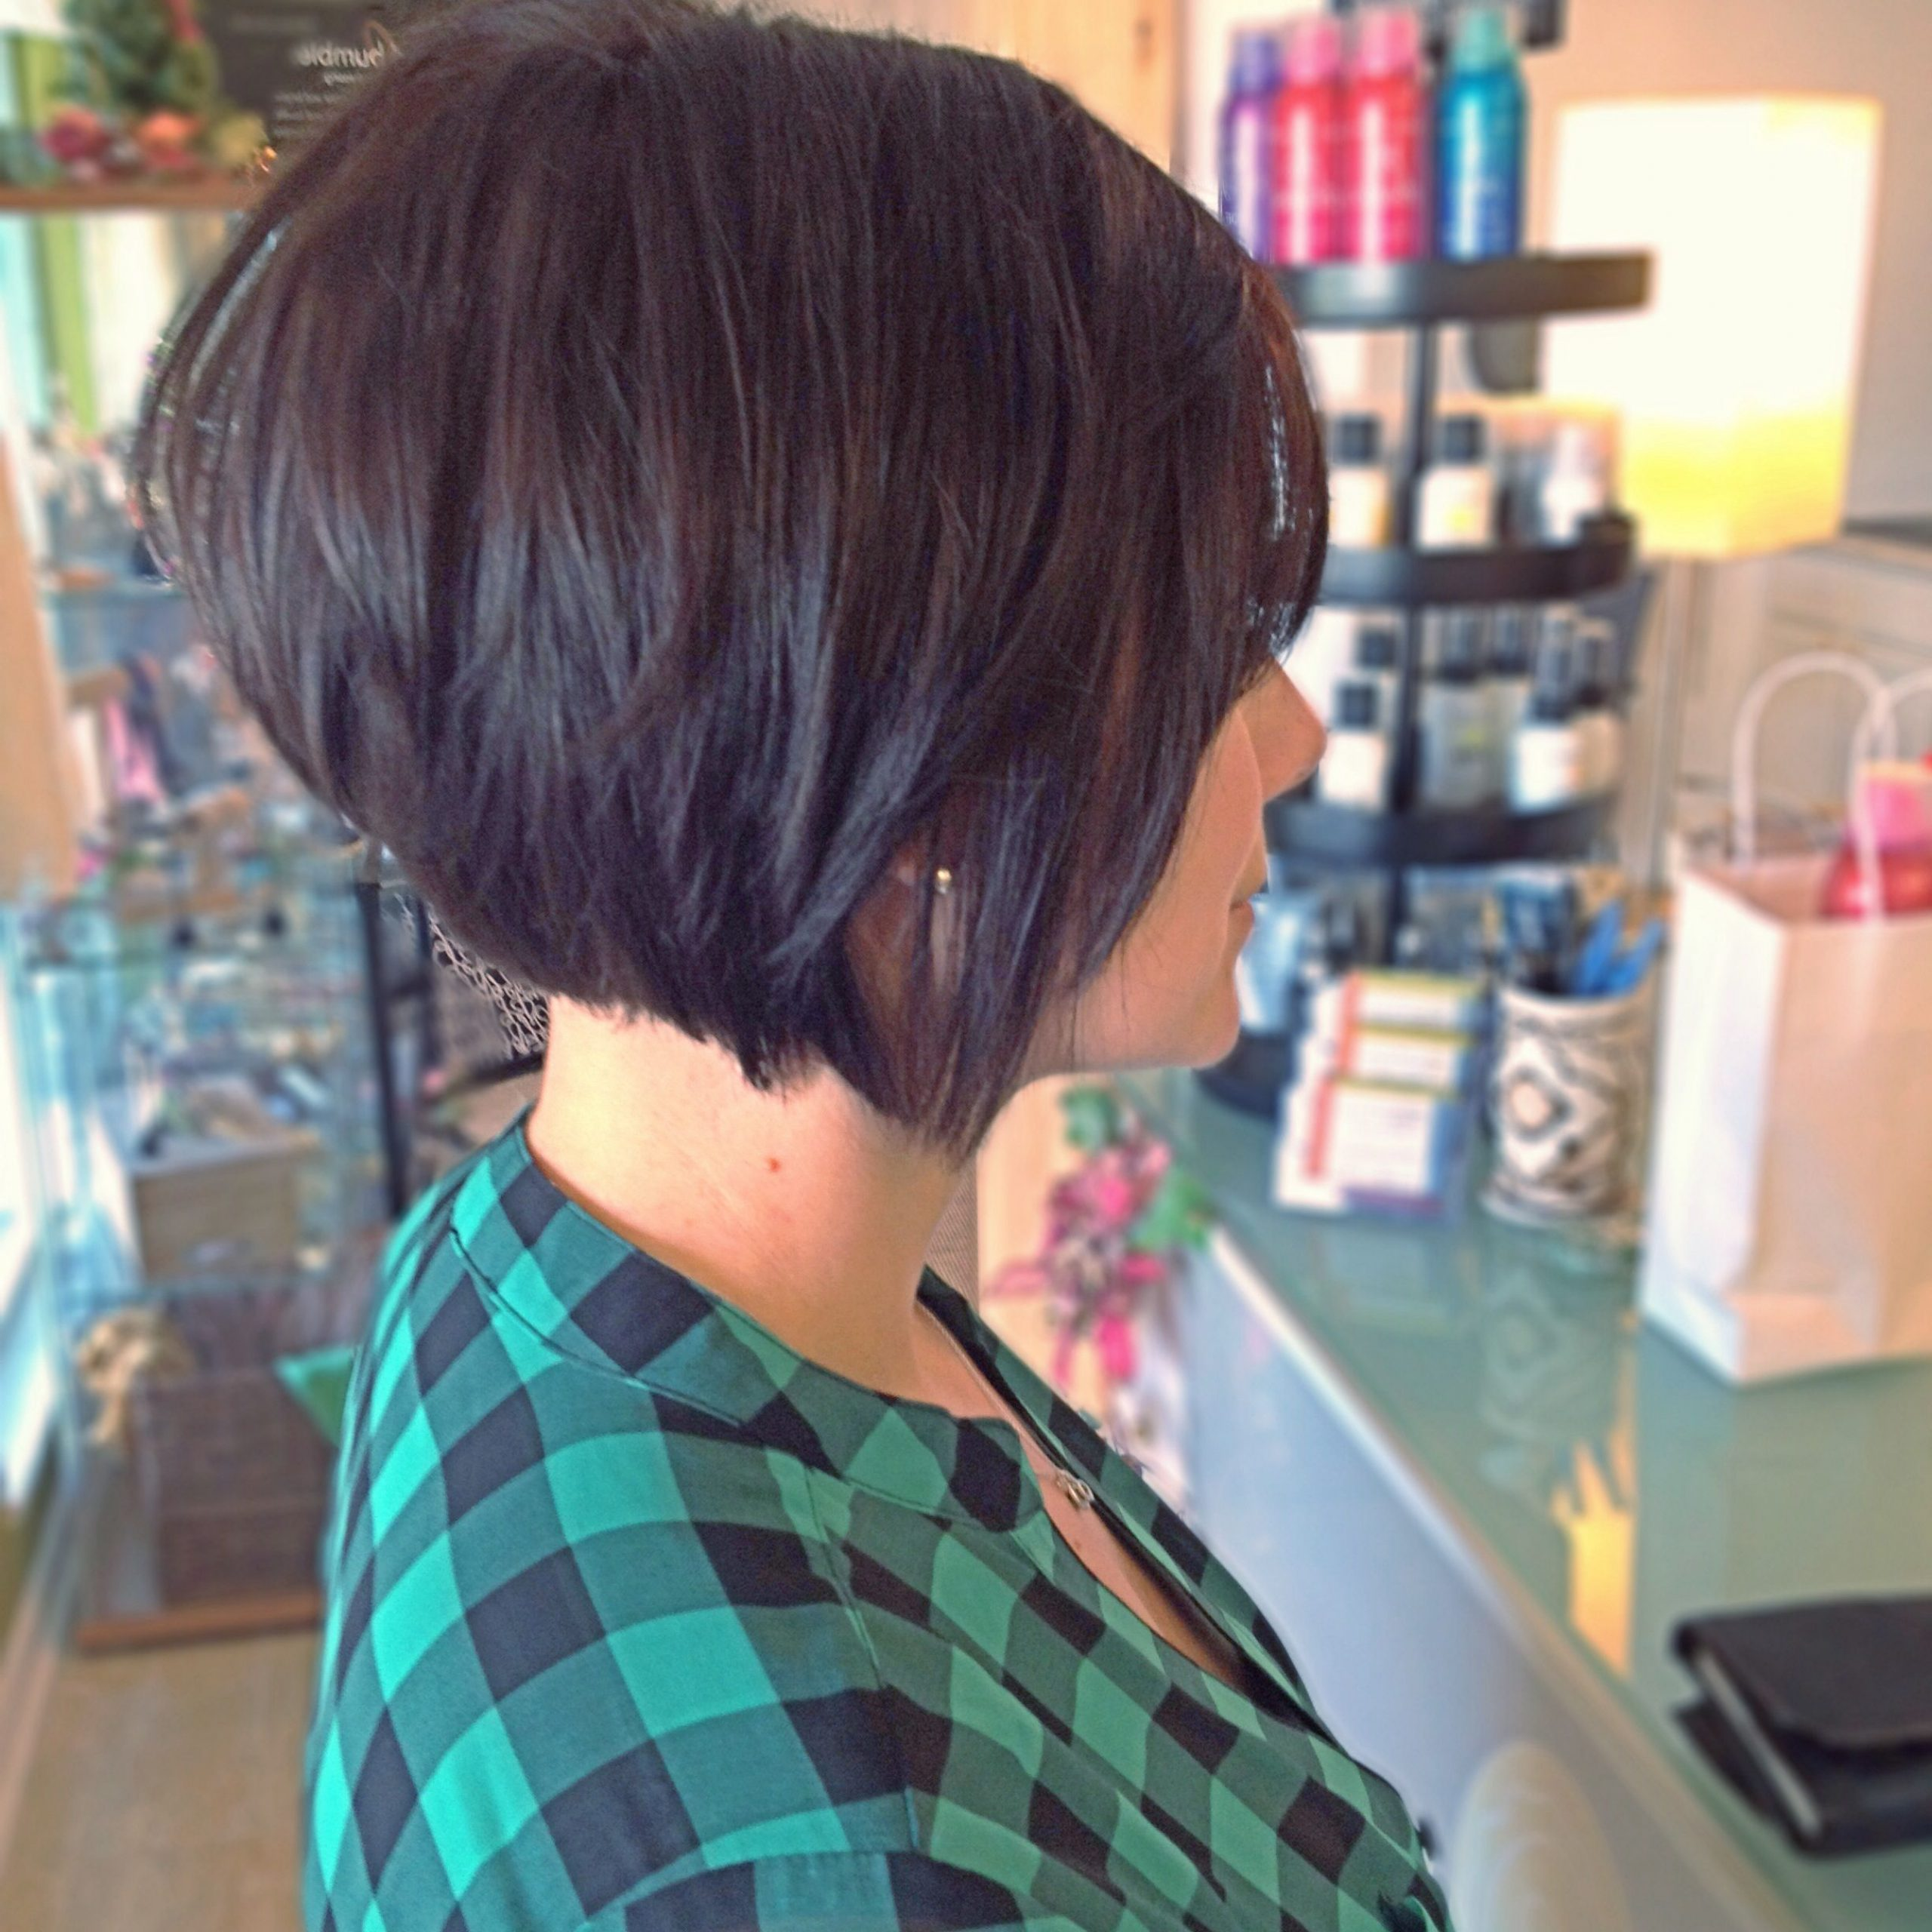 Pin On Hair, Makeup, And Nails In Most Current Black Angled Bob Hairstyles With Shaggy Layers (View 5 of 20)